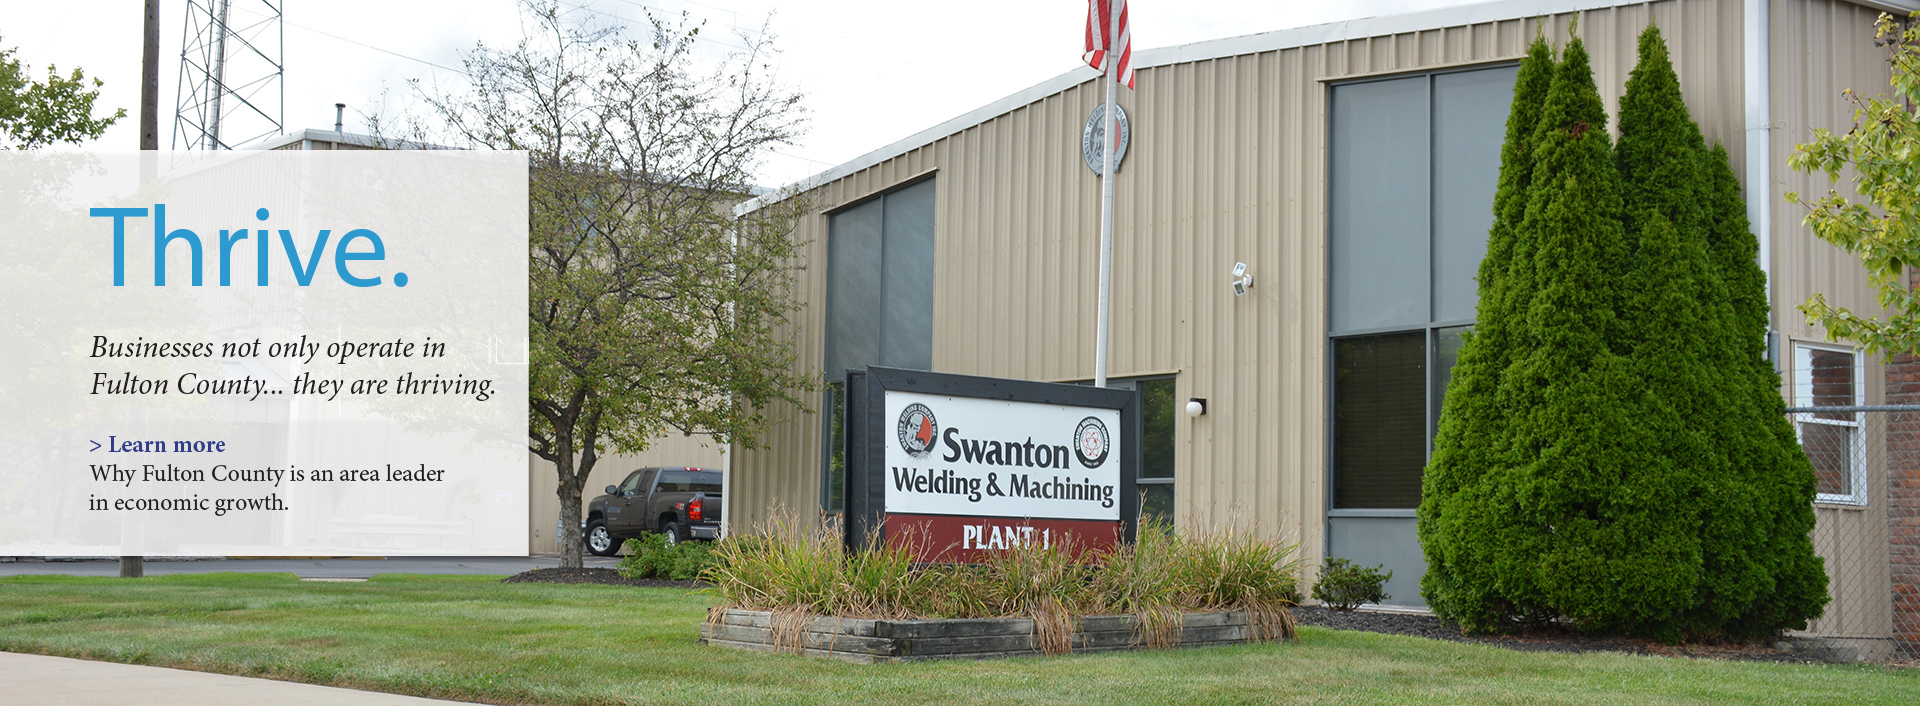 Exterior of Swanton Welding & Machining